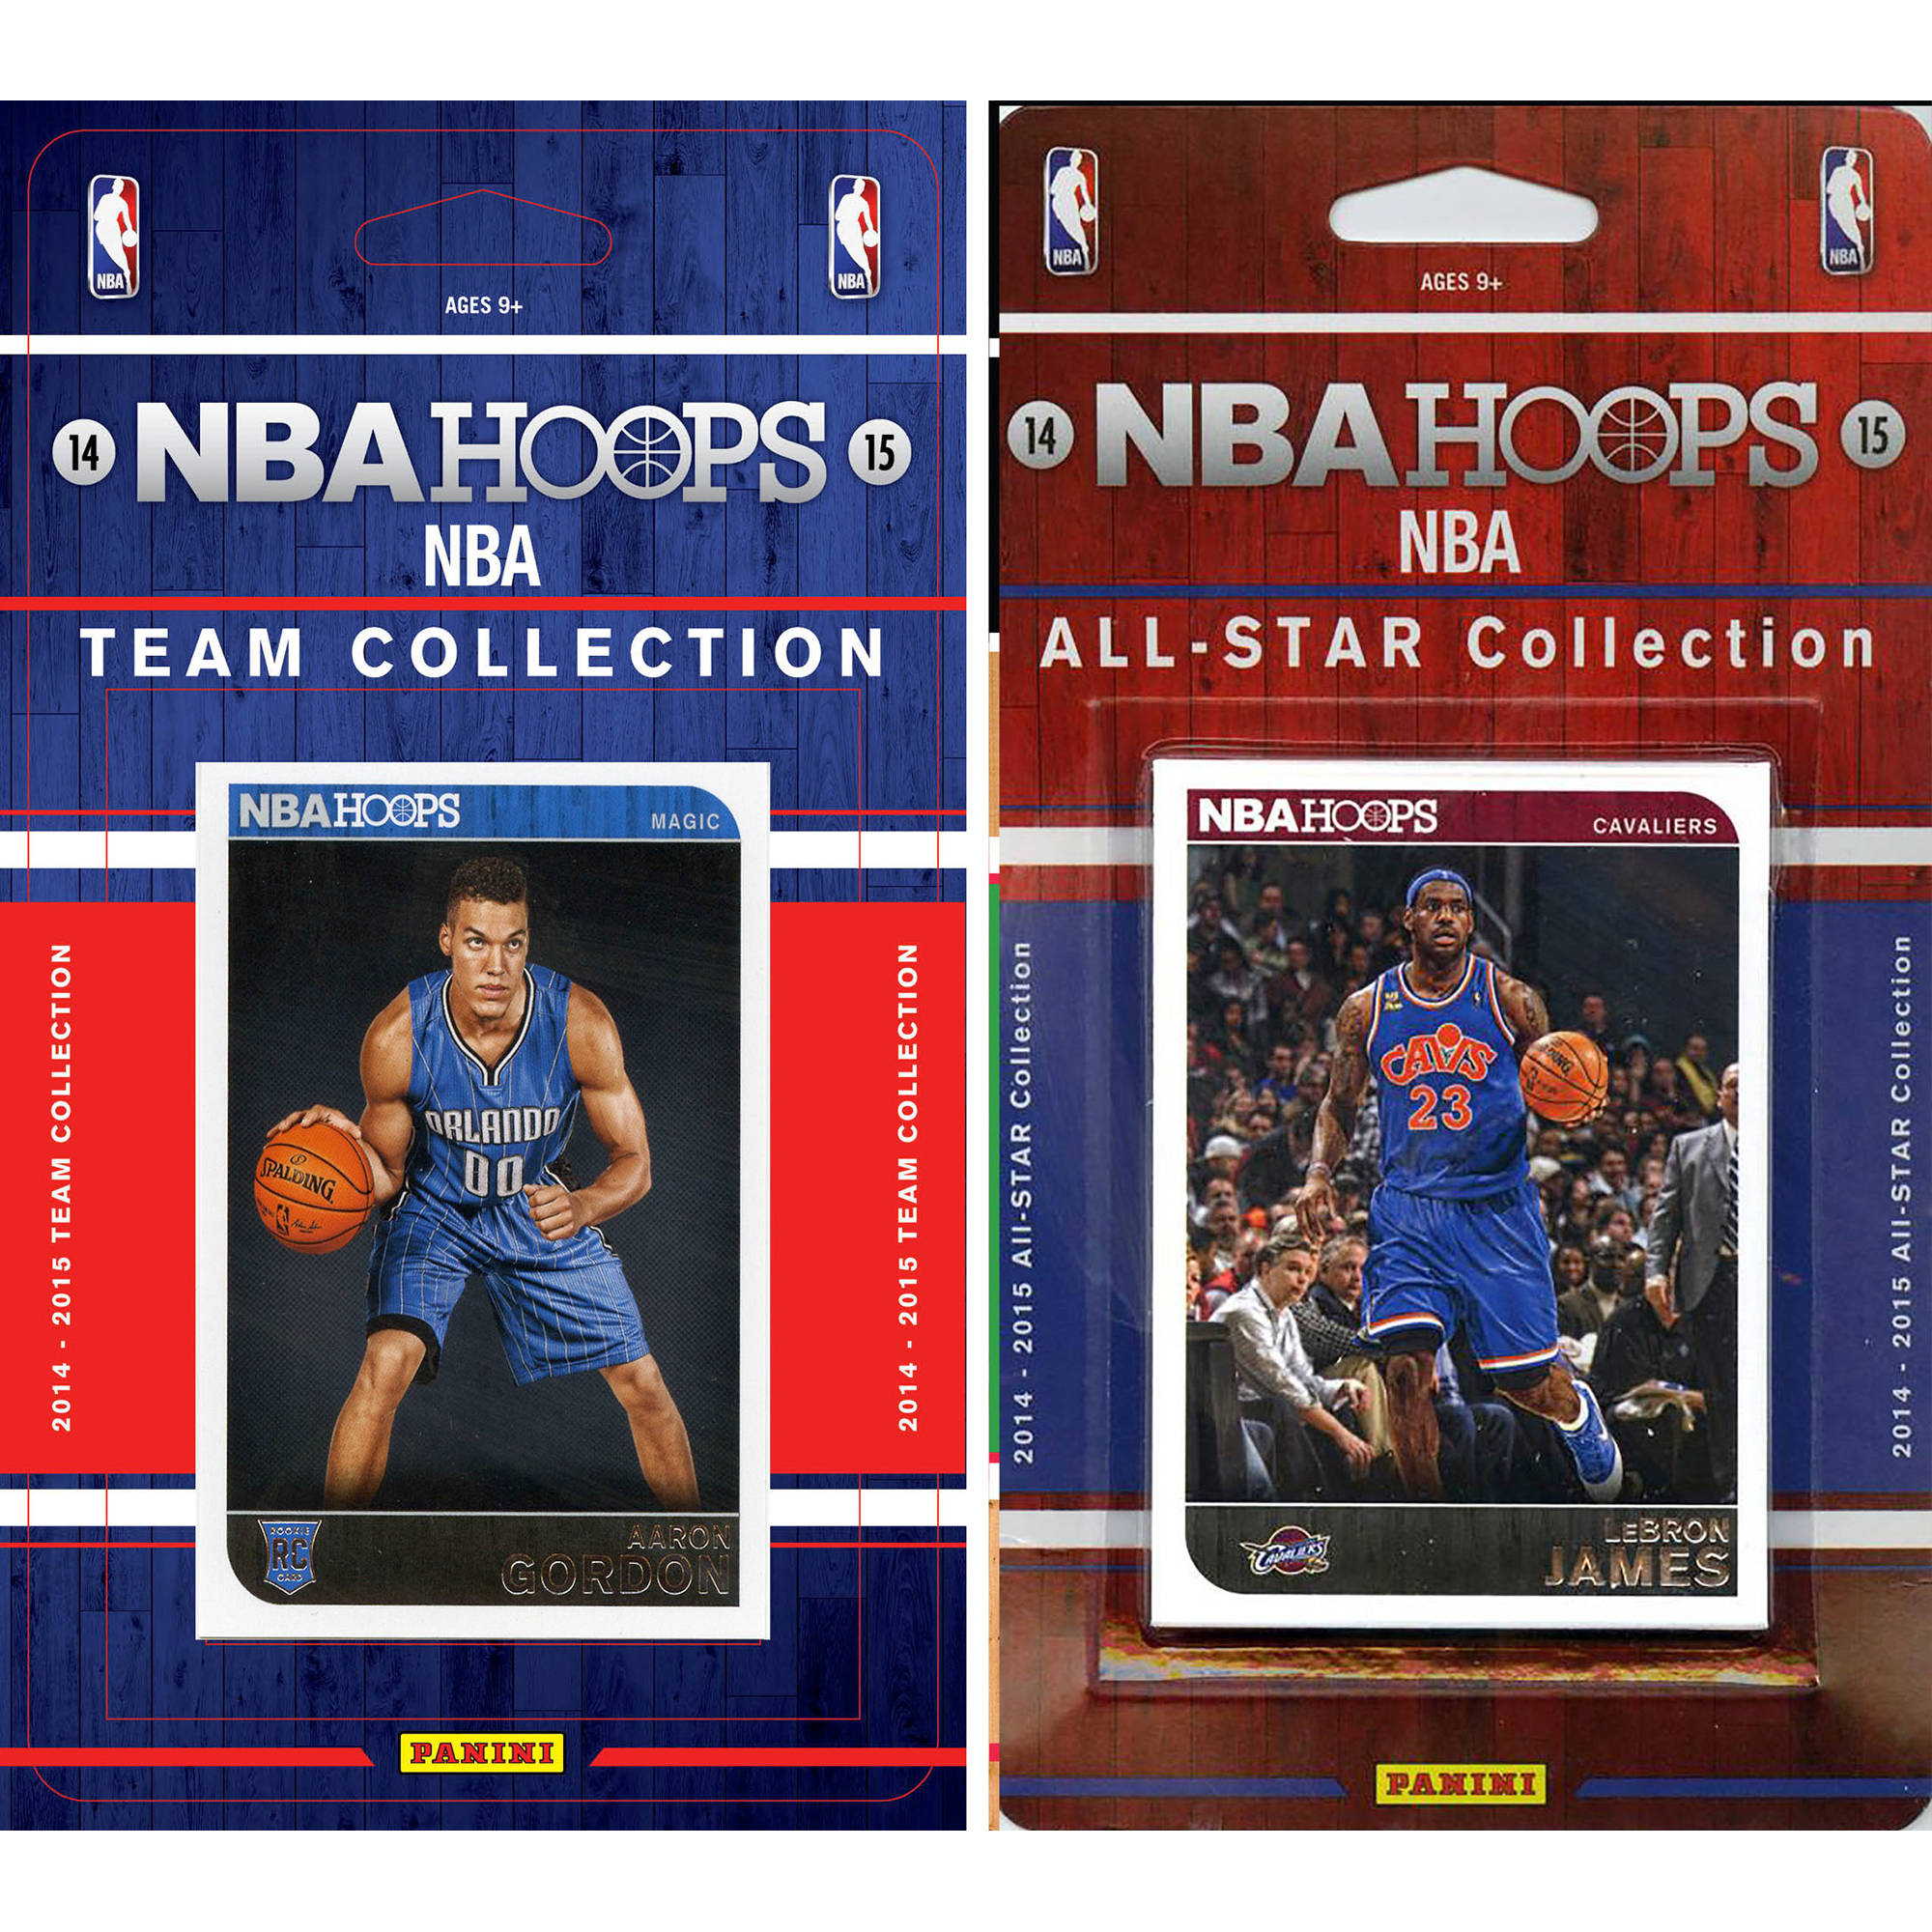 C&I Collectables NBA Orlando Magic Licensed 2014-15 Hoops Team Set Plus 2014-15 Hoops All-Star Set